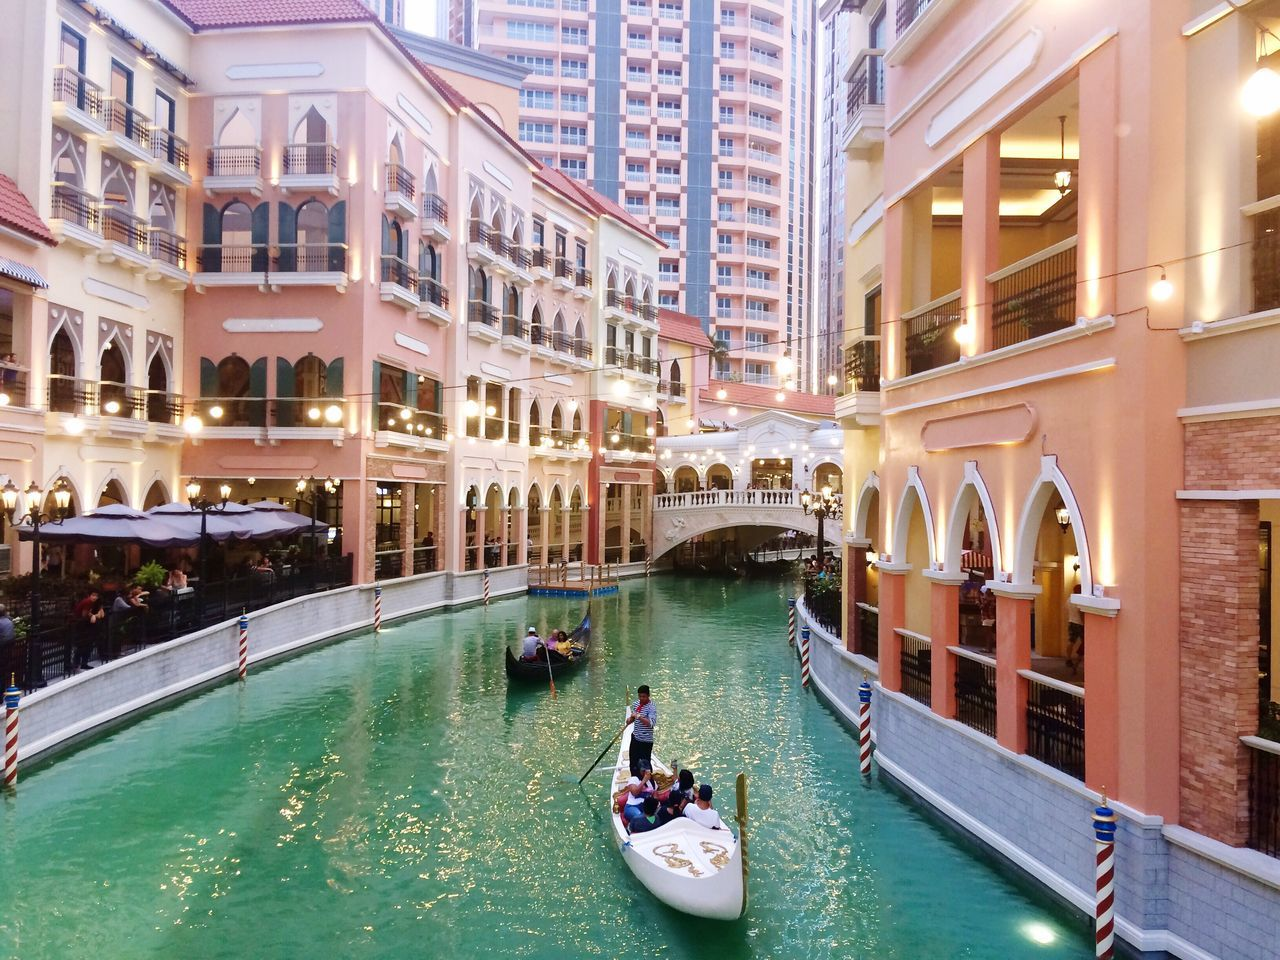 Makati City, Philippines Arts Culture And Entertainment Travel Destinations Vacay Tourism Luxury Philippines Venice Architecture Lookalike Gondola - Traditional Boat Gondolier Canal City Nautical Vessel Adventure Romance Family Time Building Exterior Italy